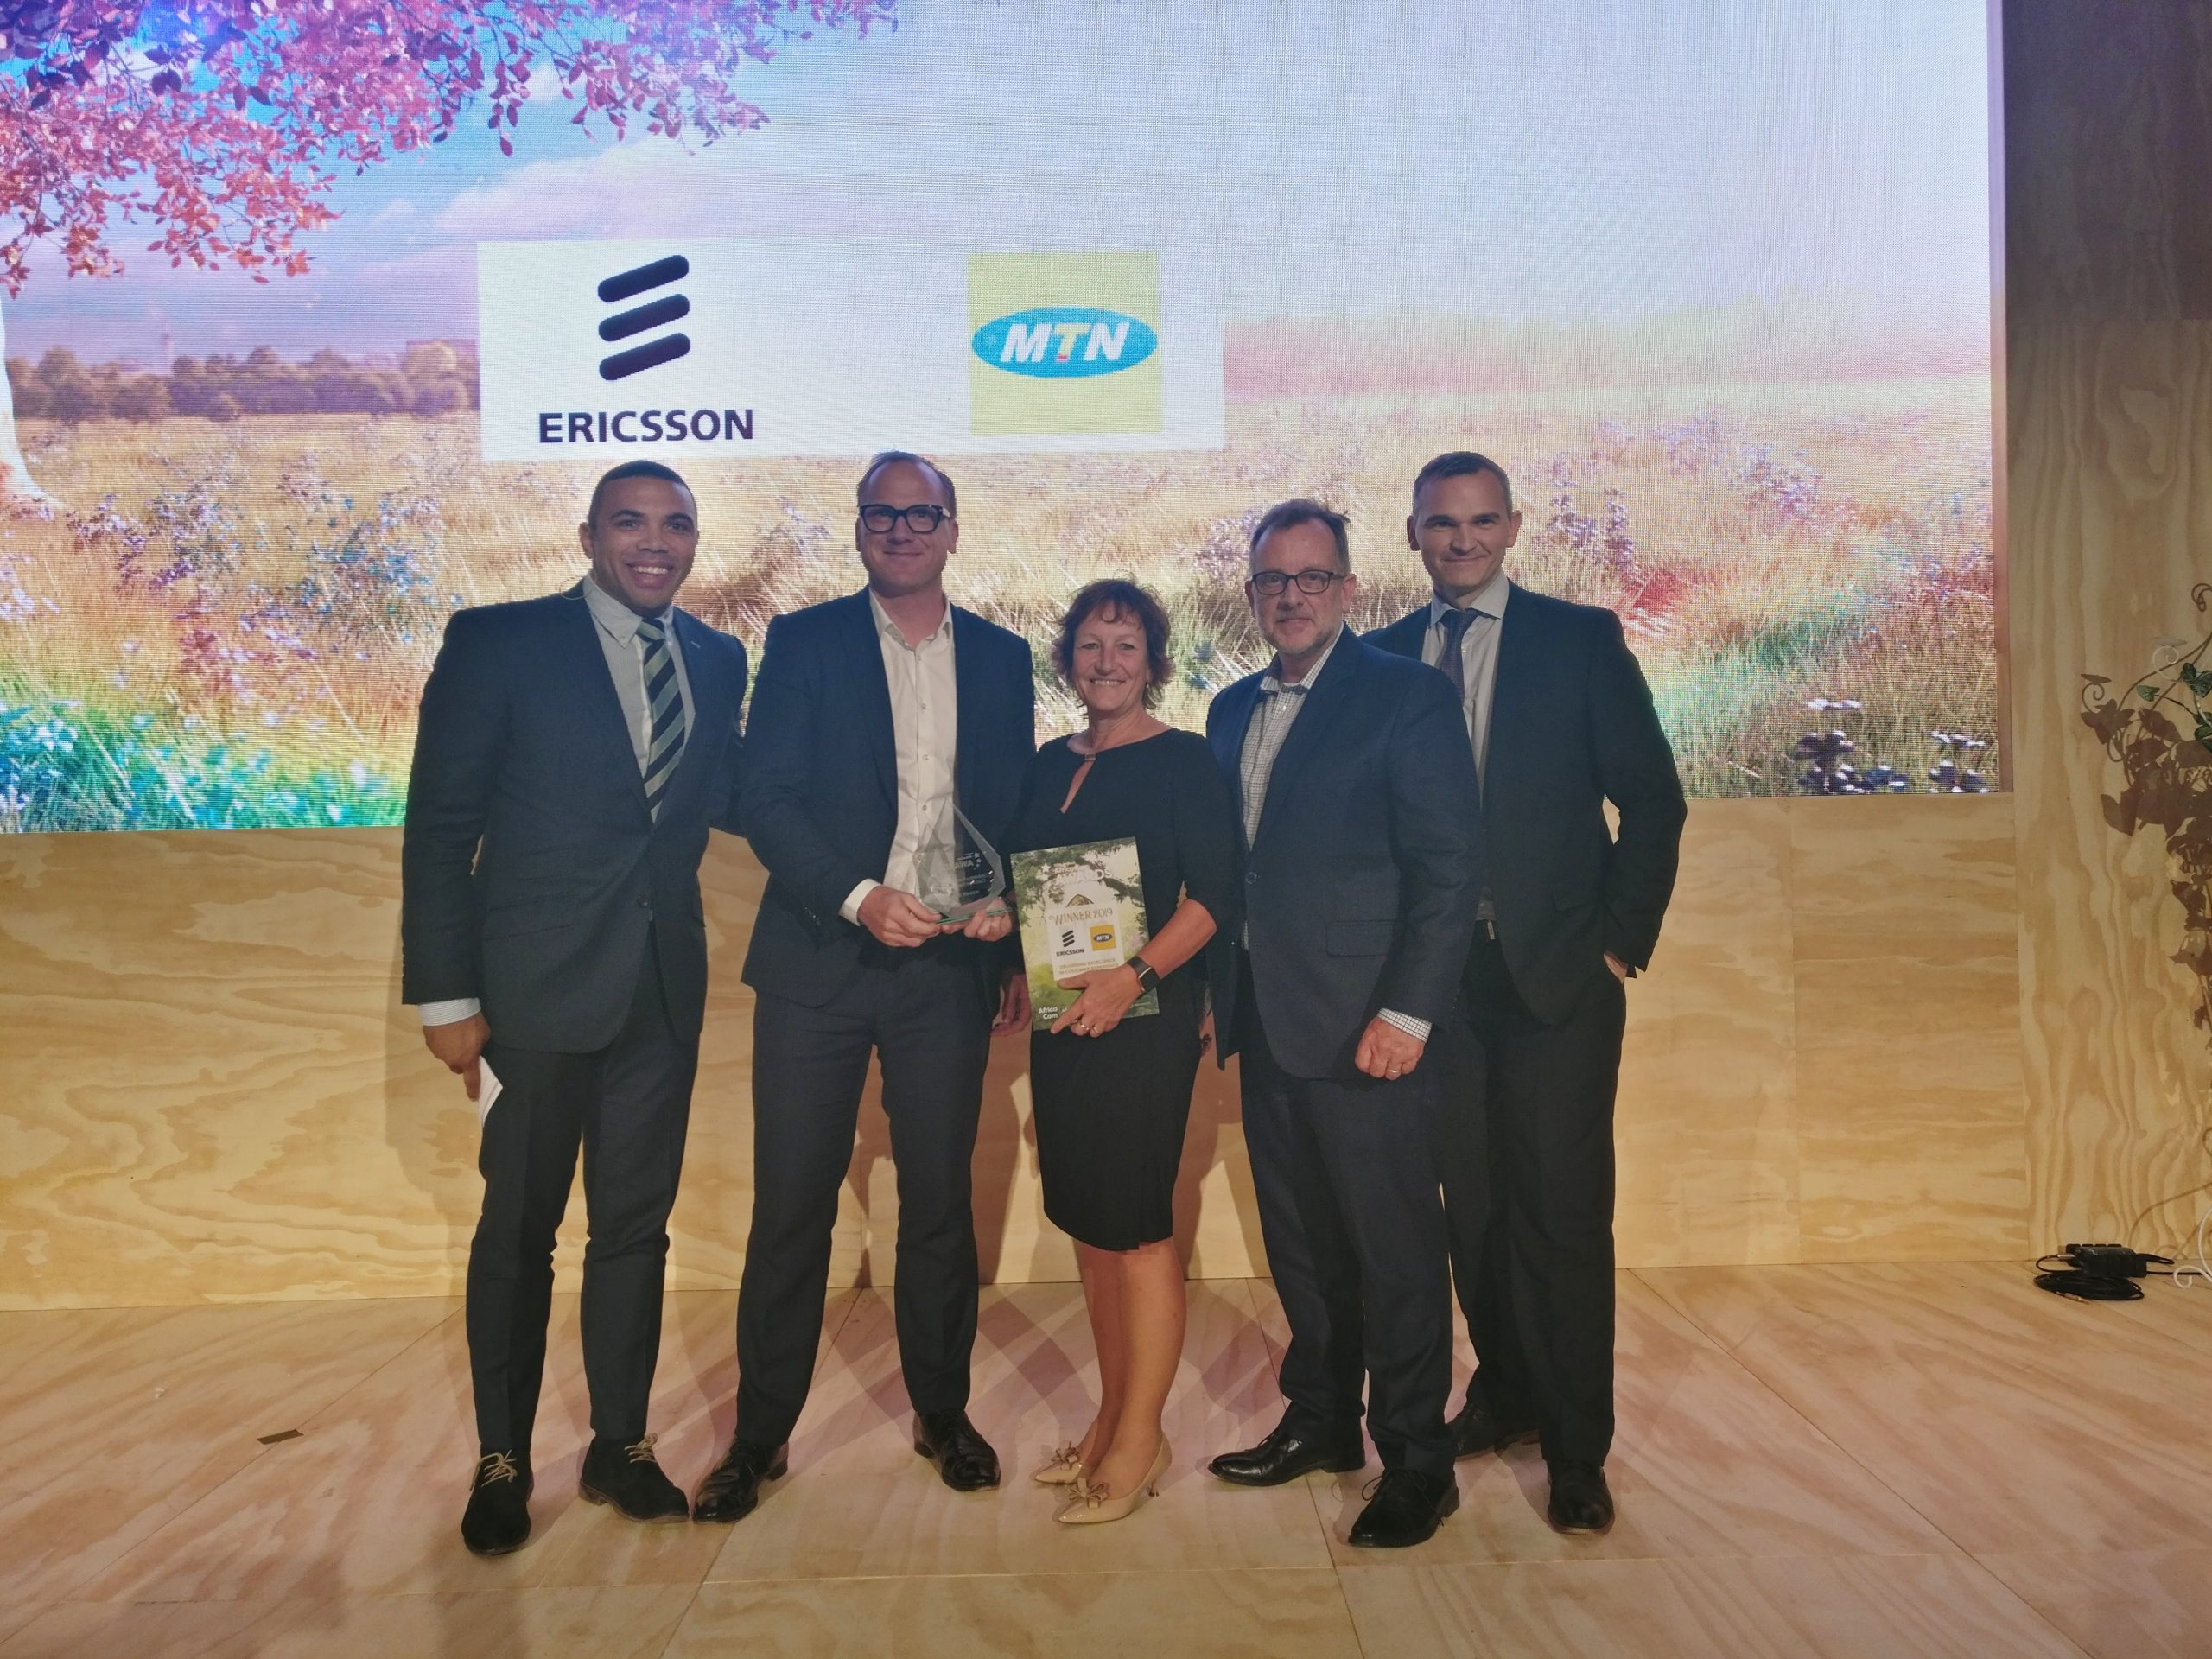 Ericsson And MTN Win 'Delivering Excellence In Customer Experience Award' At AfricaCom 2019